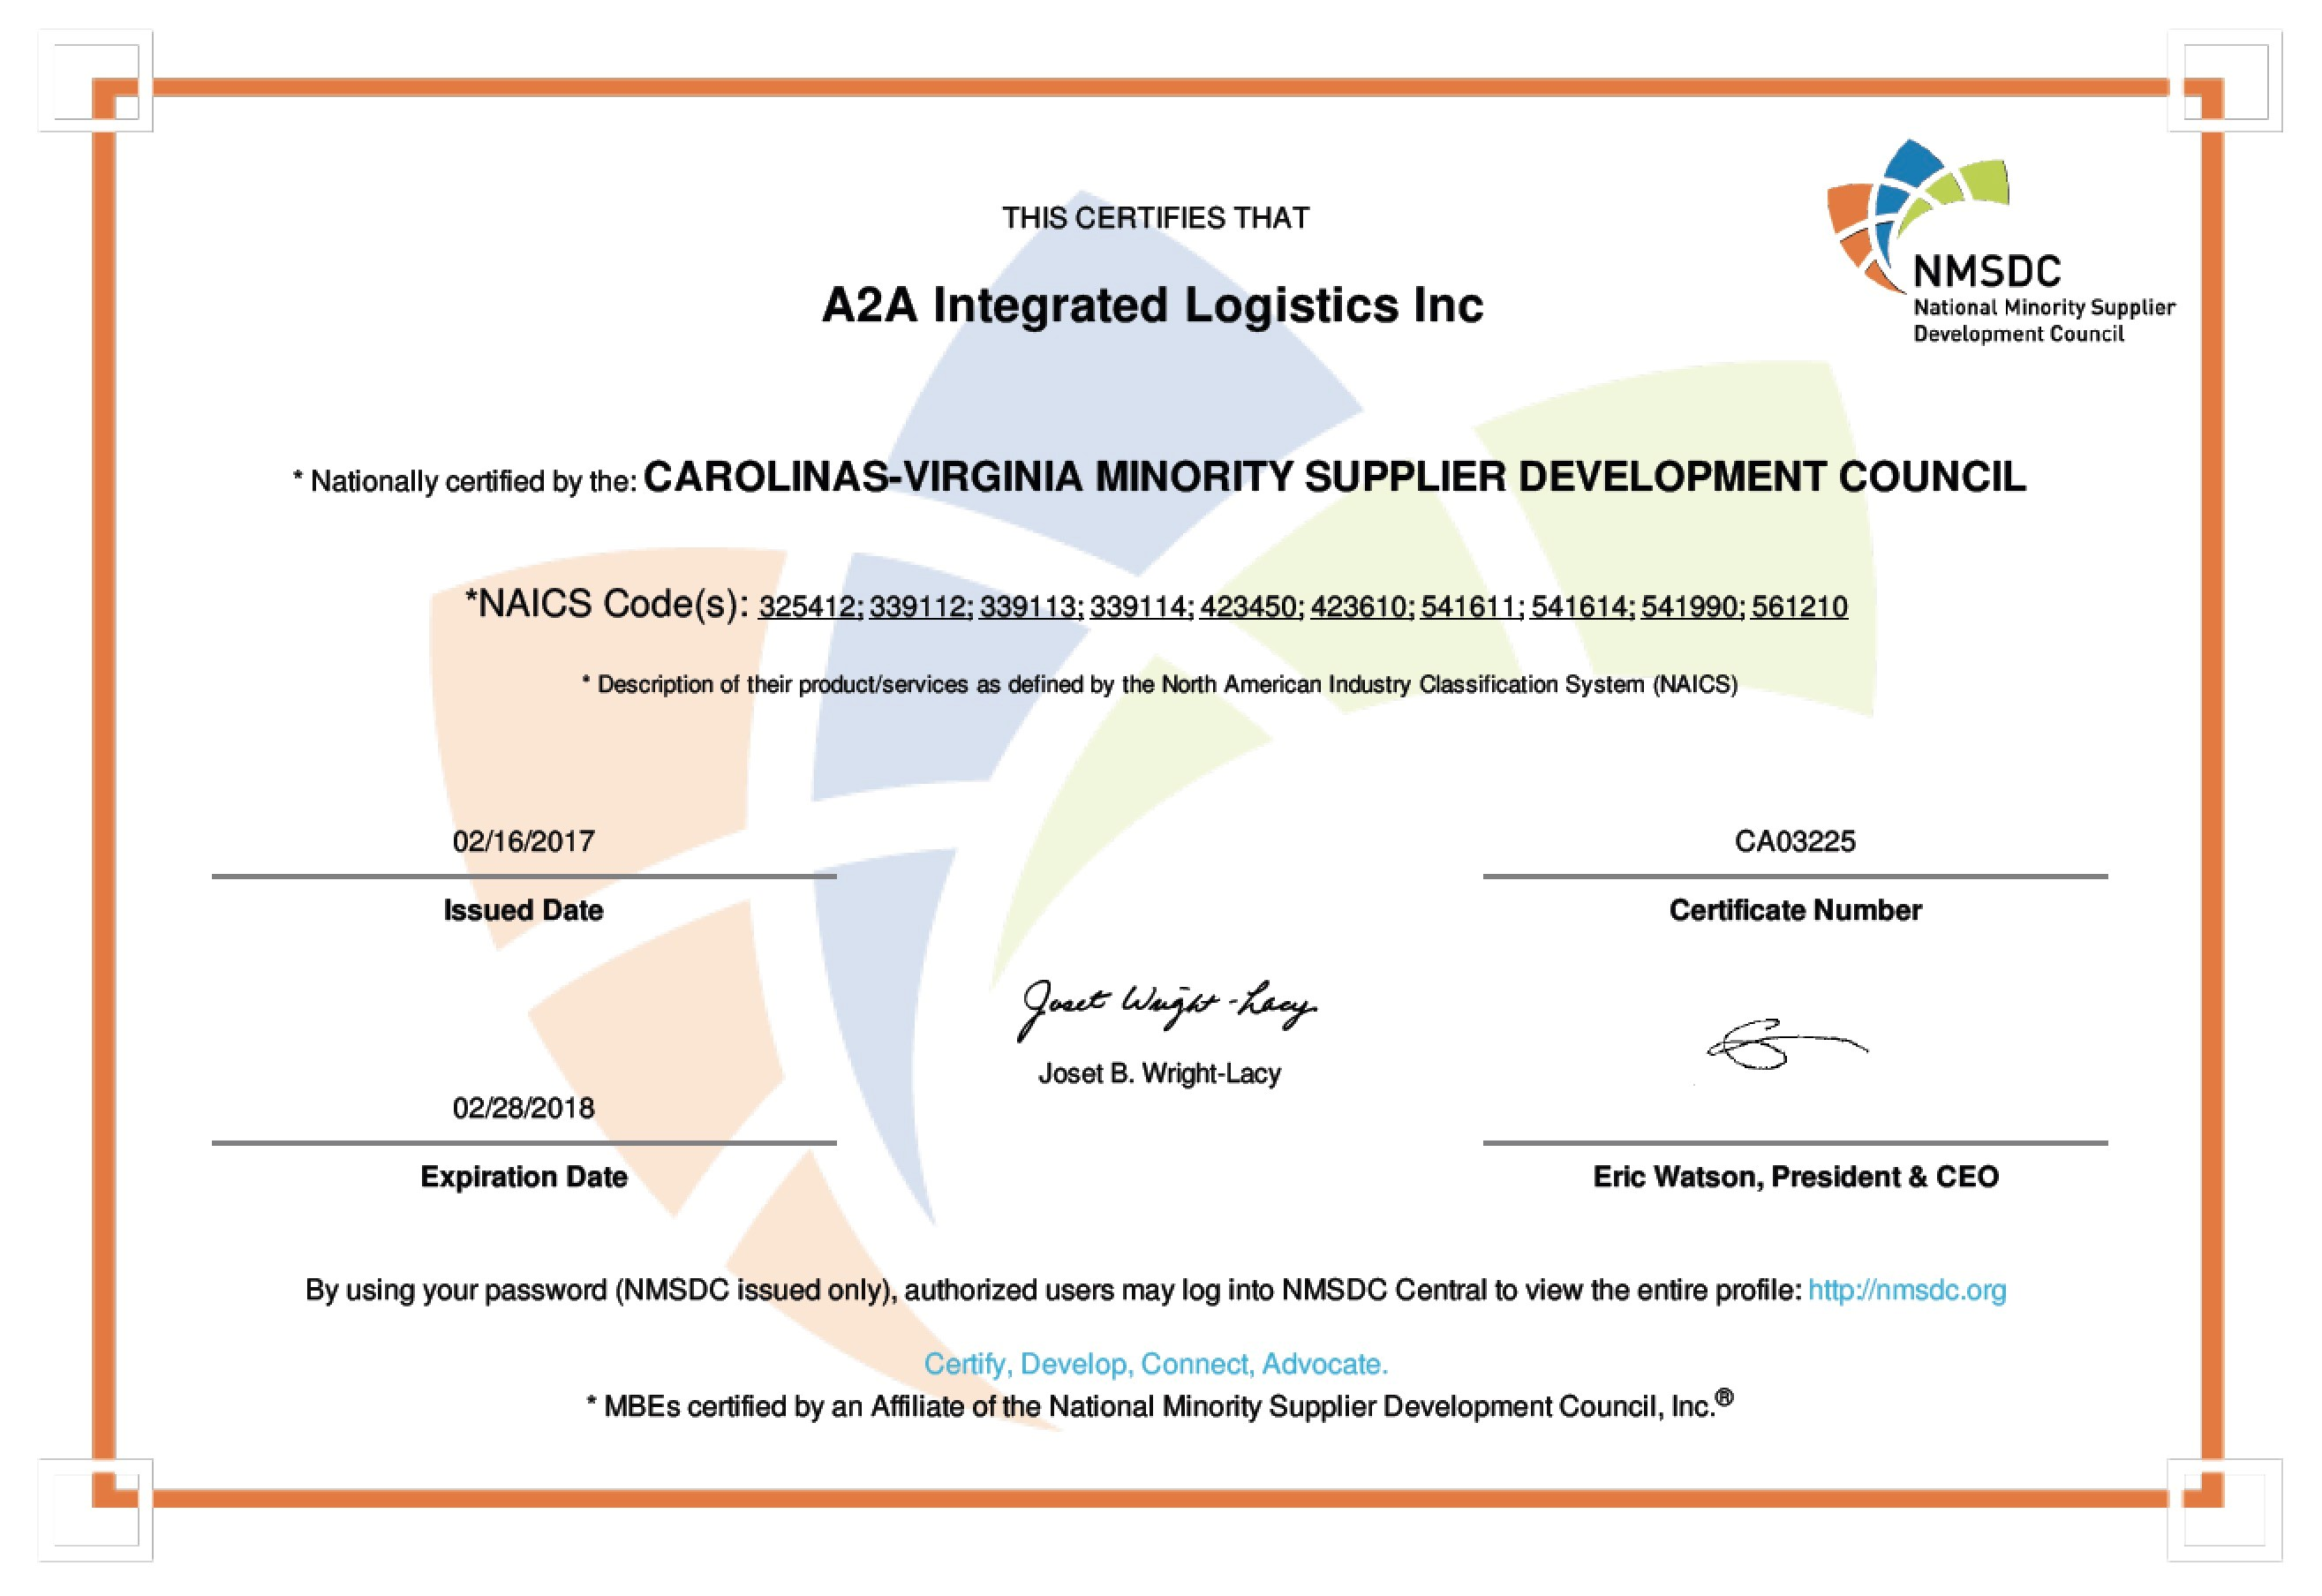 Certifications a2a logistics a2a is a certified mbe through the national minority supplier development council nmsdc within the carolinas virginia chapter xflitez Choice Image